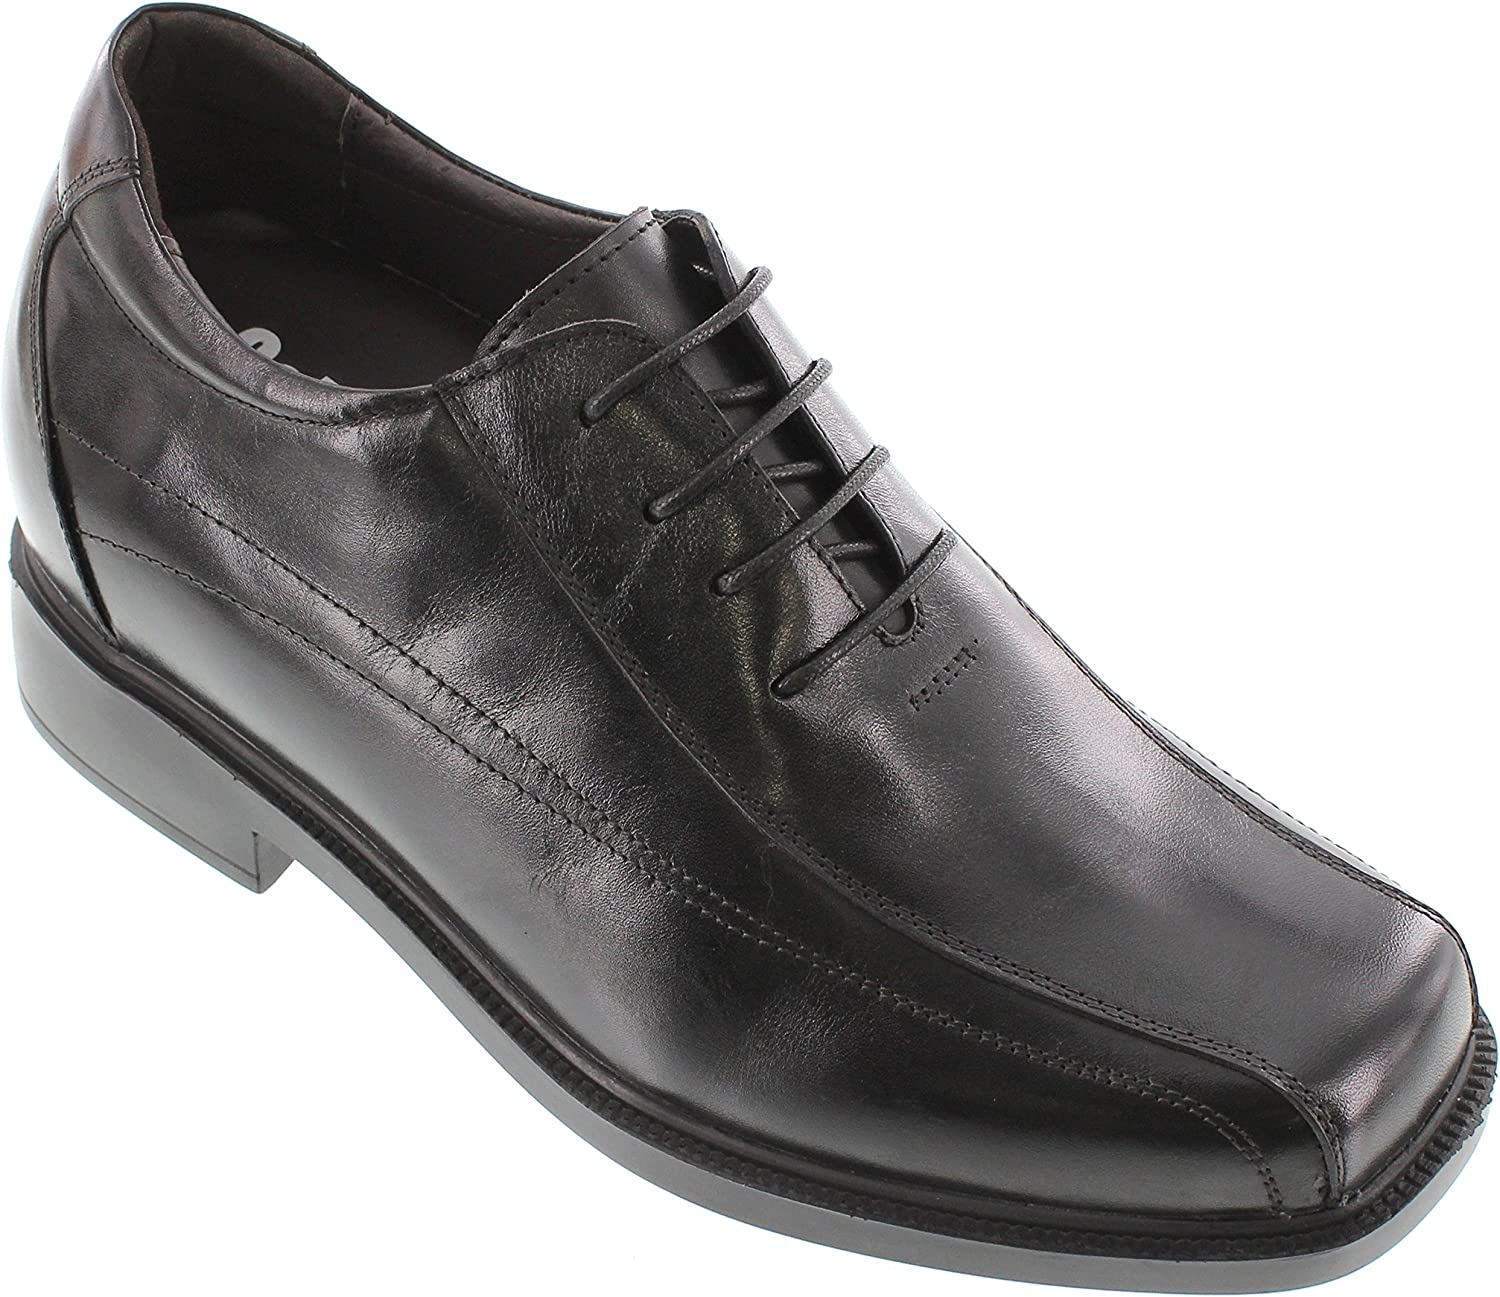 Calden Men's Invisible Height Increasing Elevator Shoes - Black Leather Lace-up Wide Fit Lightweight Dress Oxfords - 3.3 Inches Taller - K31715